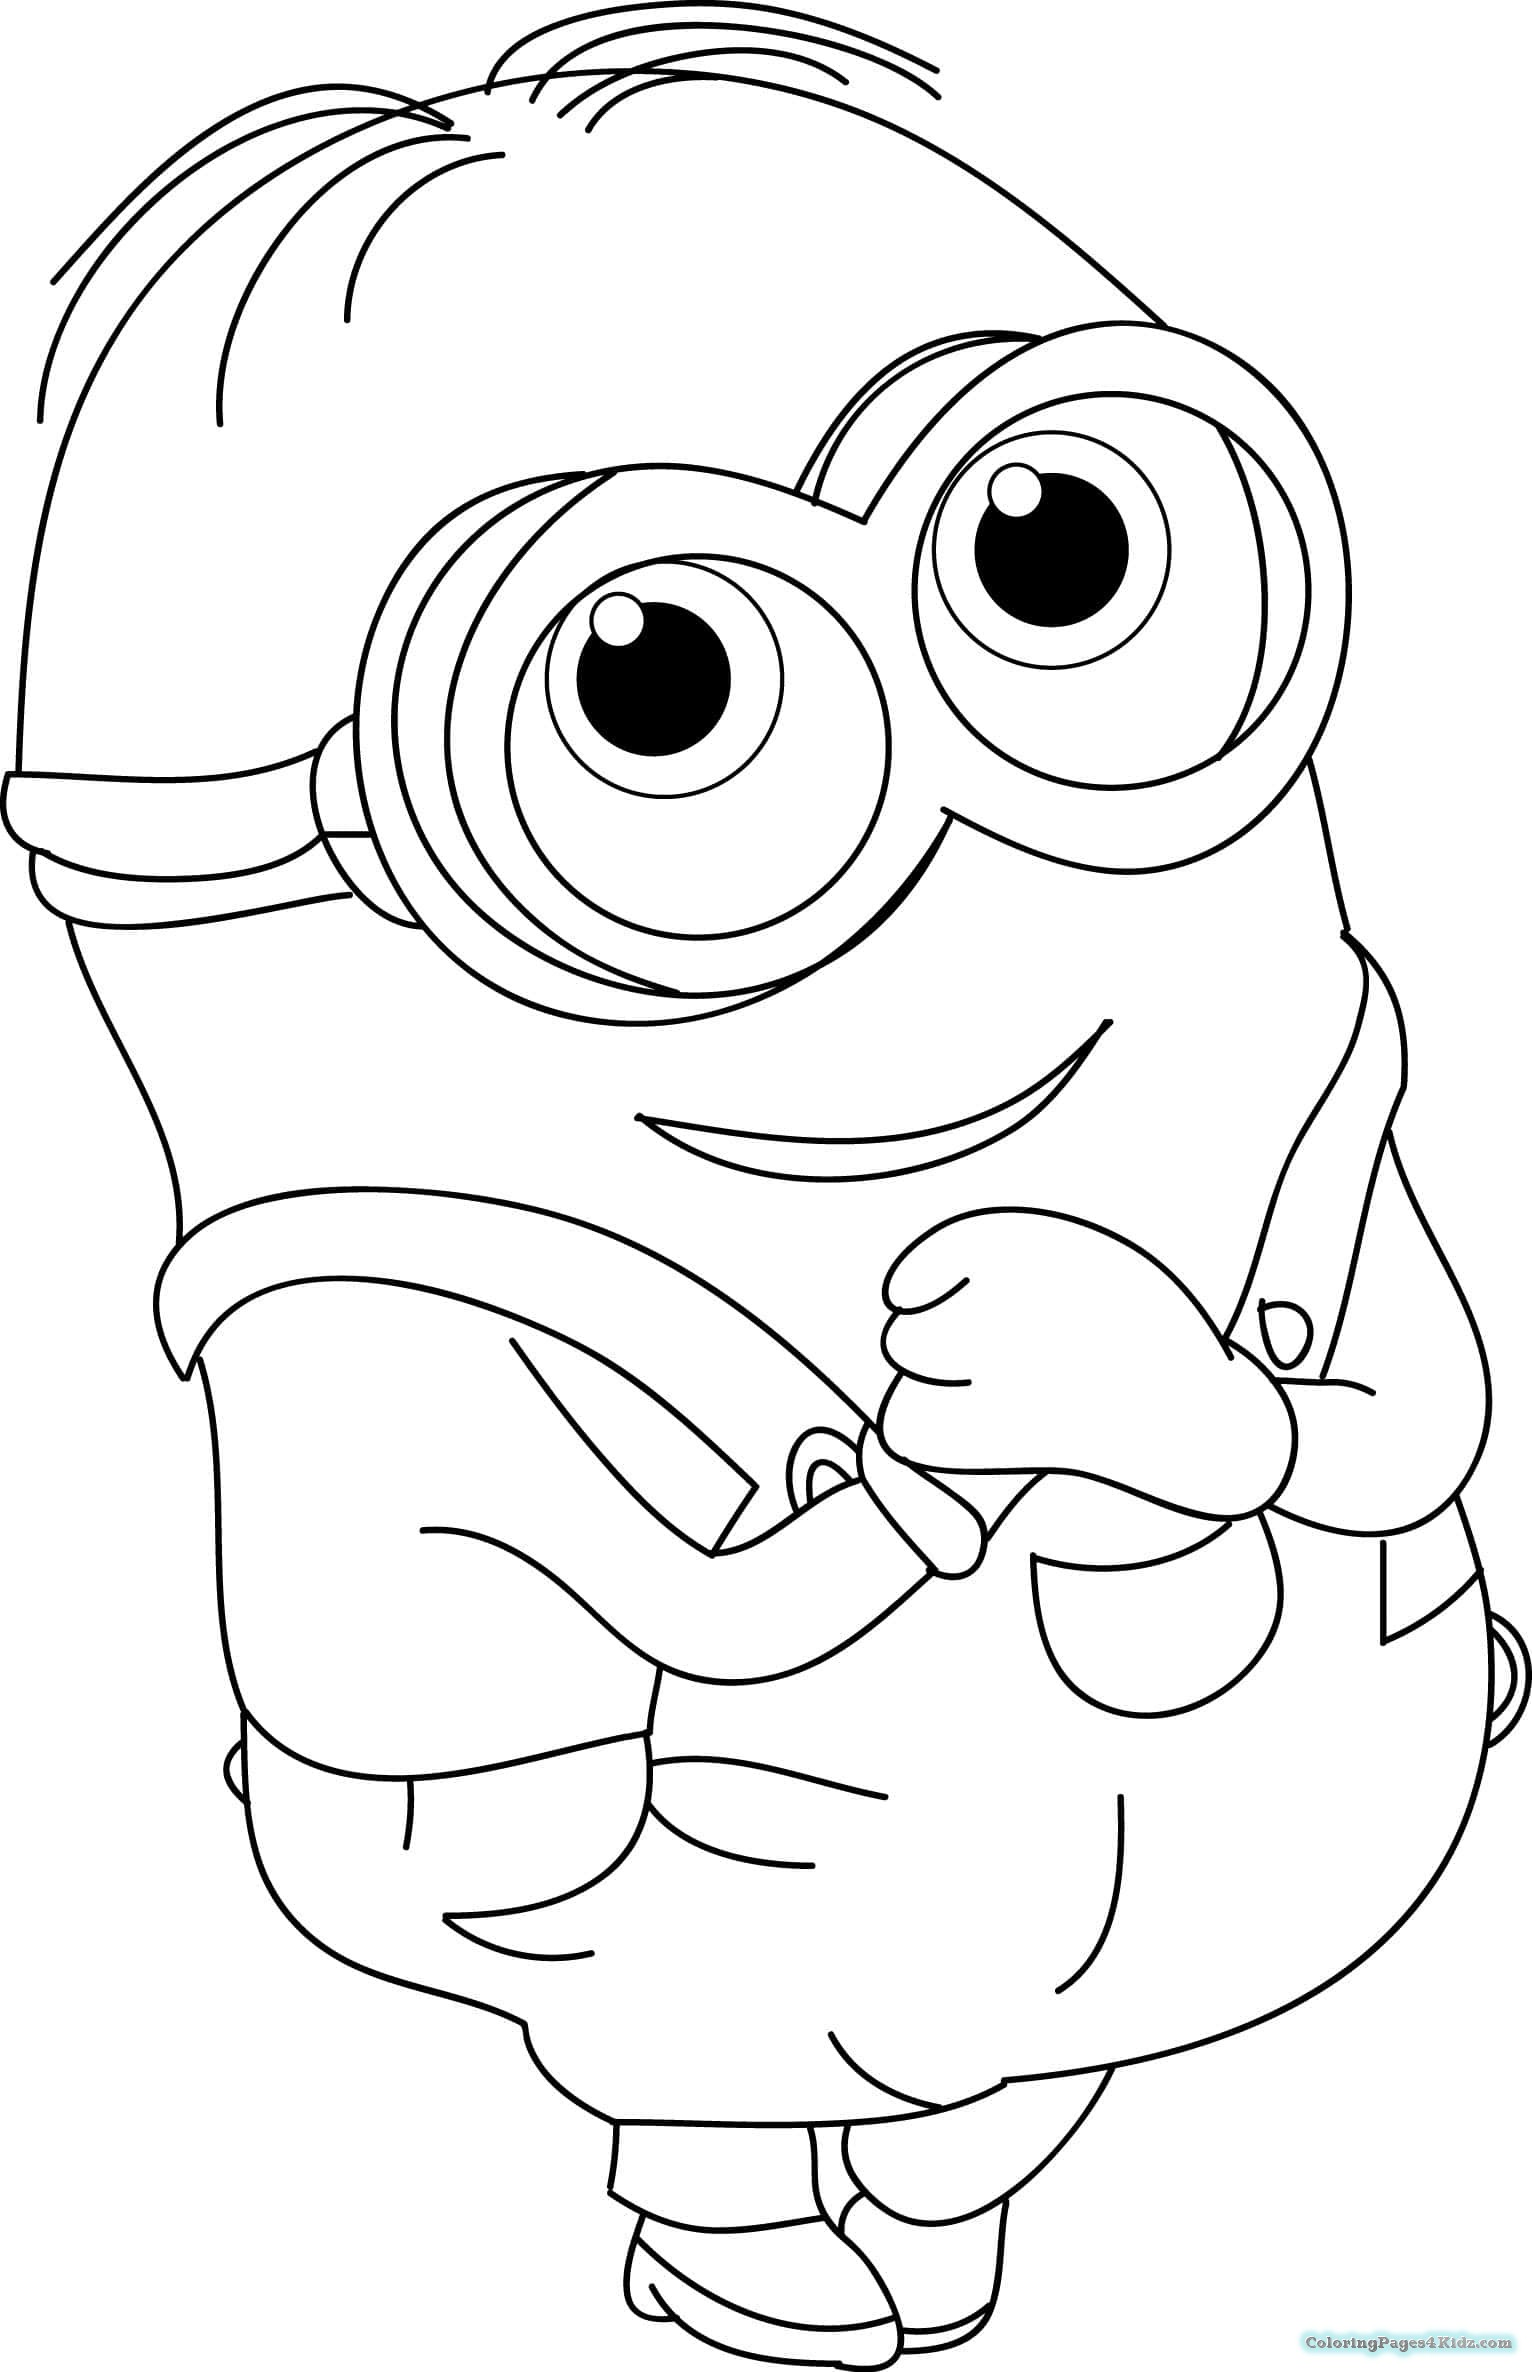 minion pictures to print print download minion coloring pages for kids to have print pictures to minion